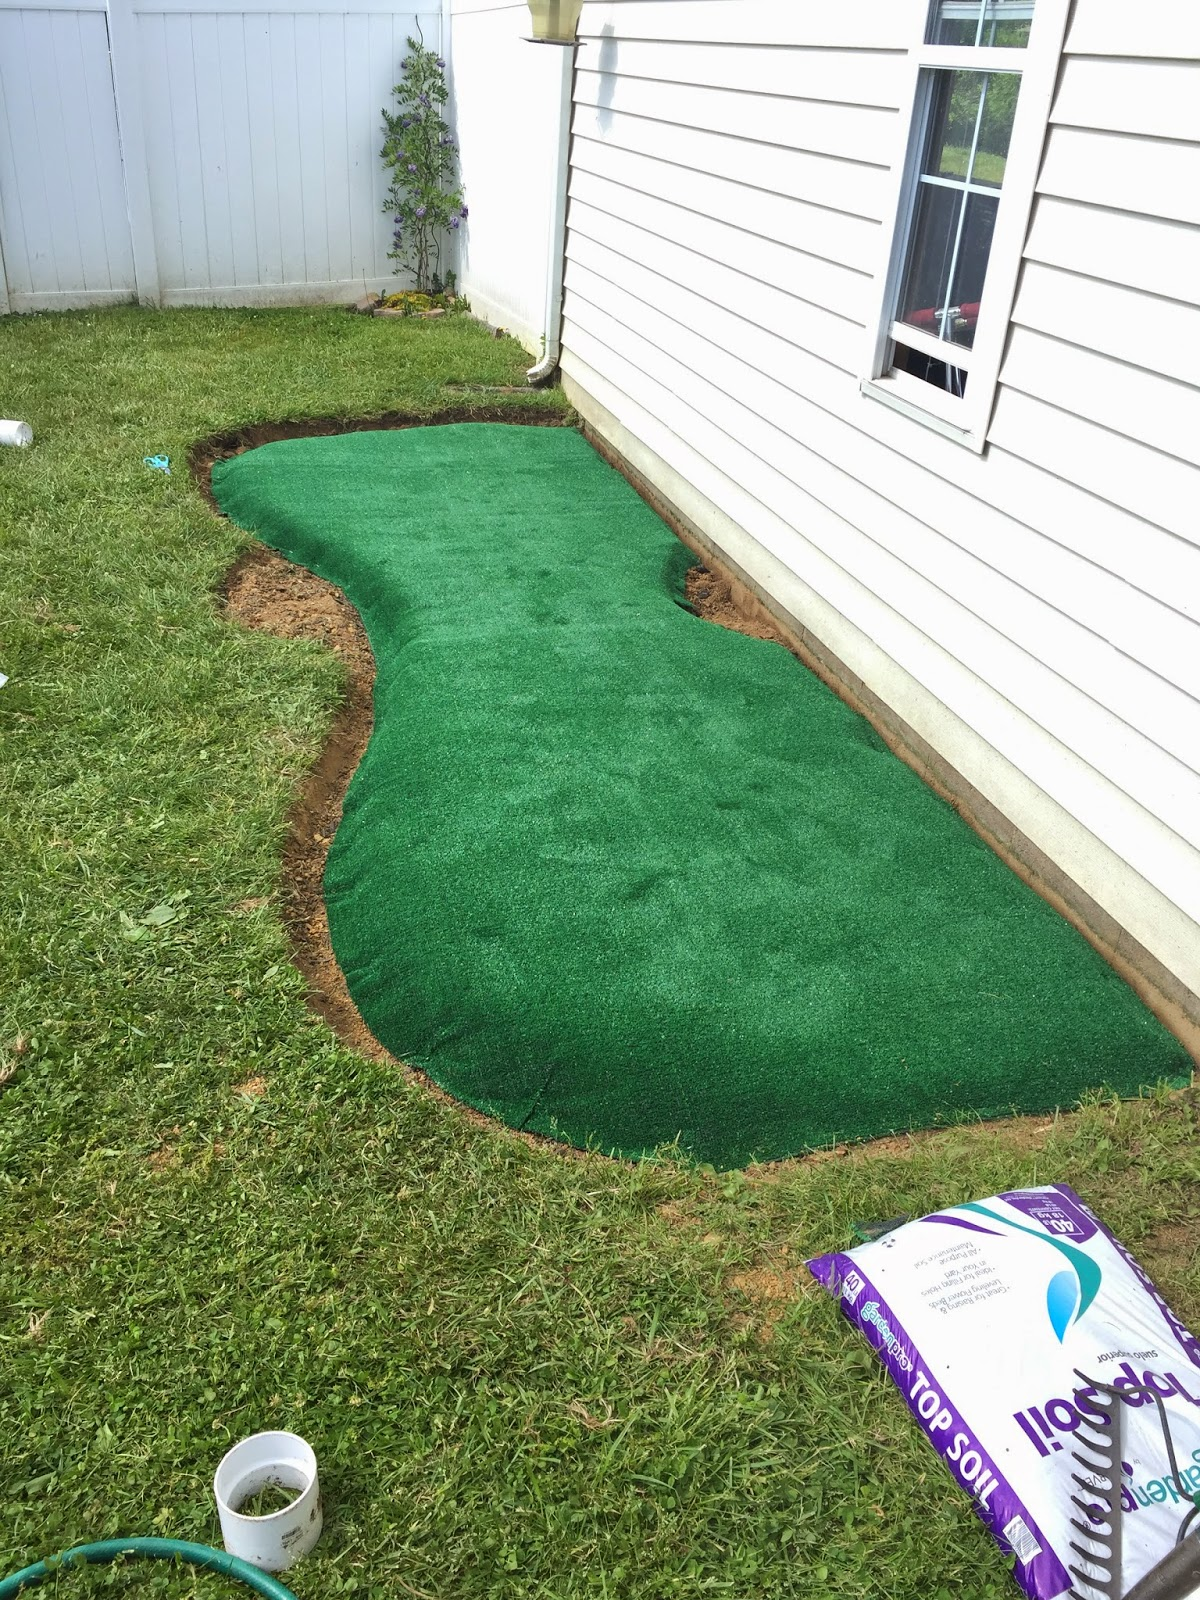 Little Bit Funky: How To Make A Backyard Putting Green! {DIY Putting Green}